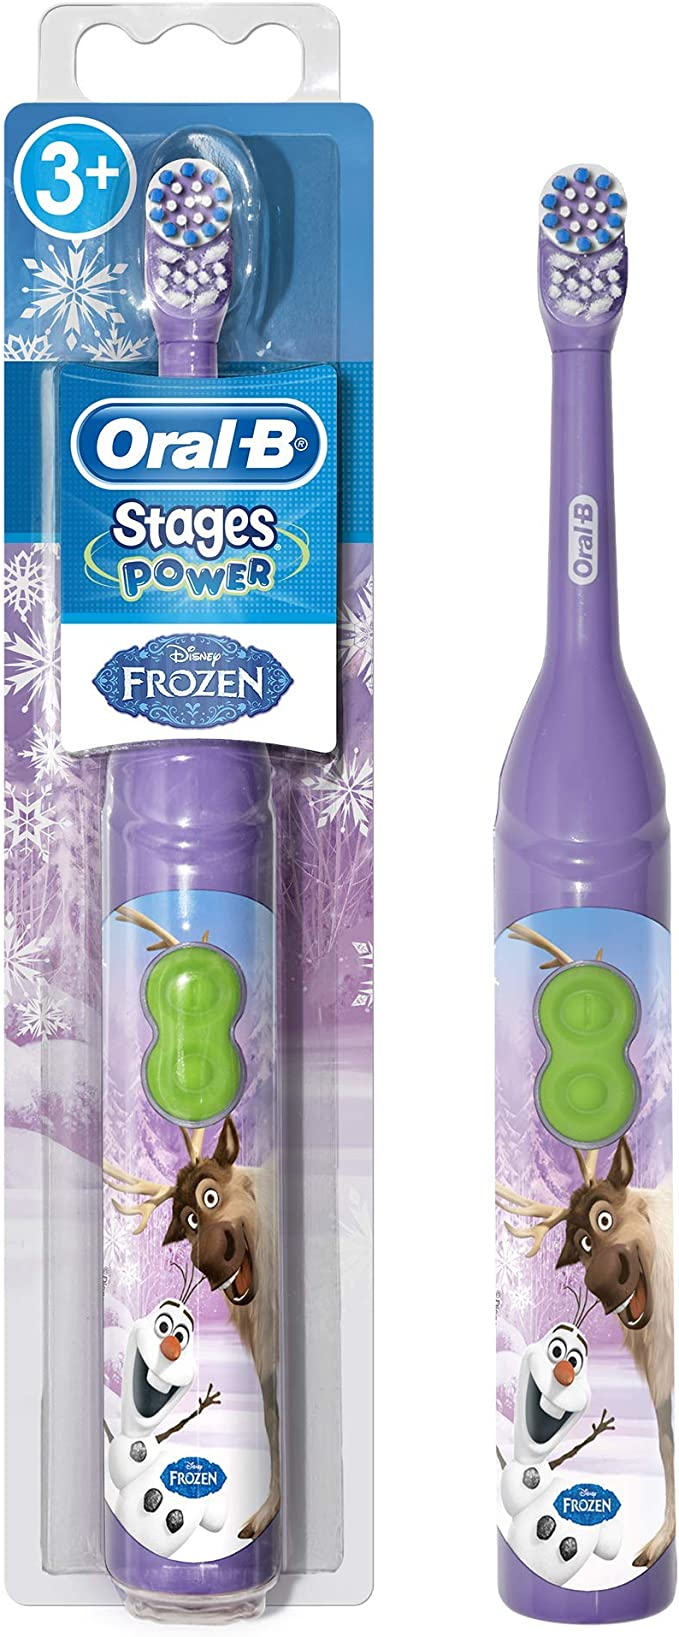 4 Oral B Spazzole Stages Power Frozen FROZEN OralB SPAZZOLINO